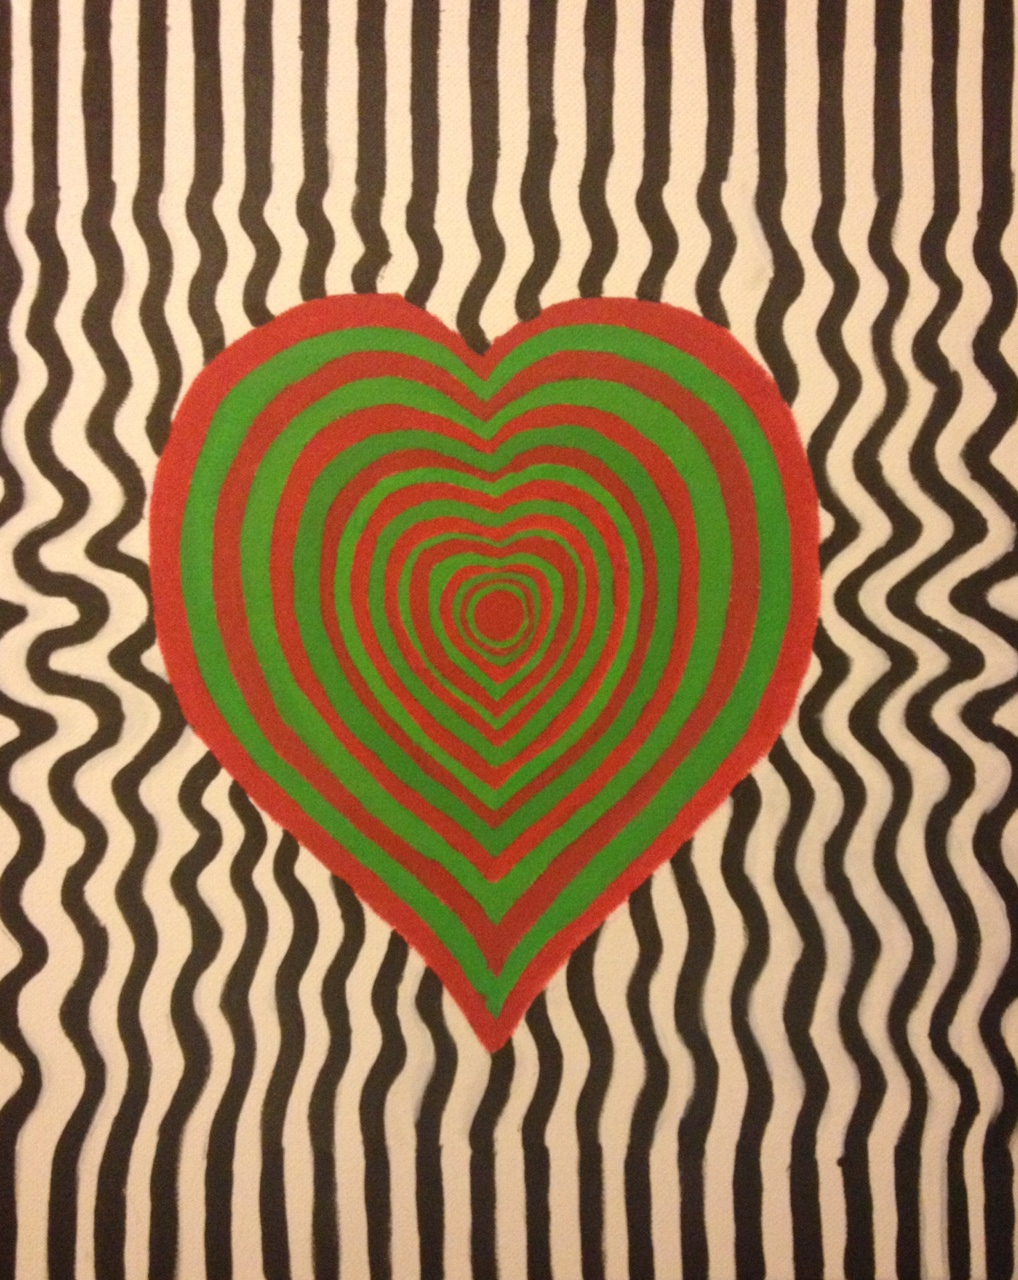 Red-Green Vibrations